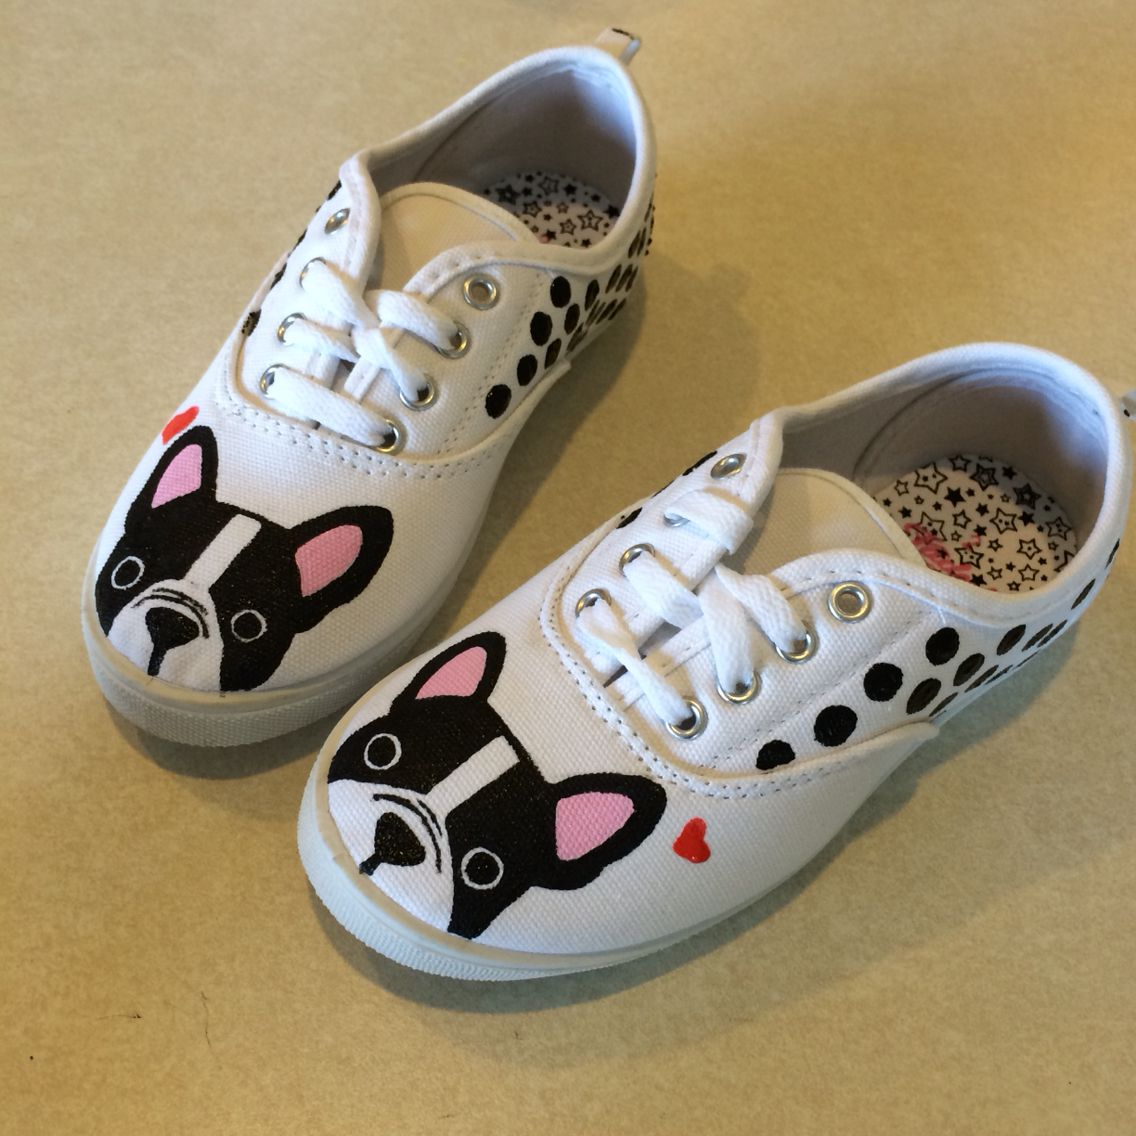 French Bulldog Painted Sneakers Frenchie Shoes Painted Sneakers Diy Shoes Painted Shoes